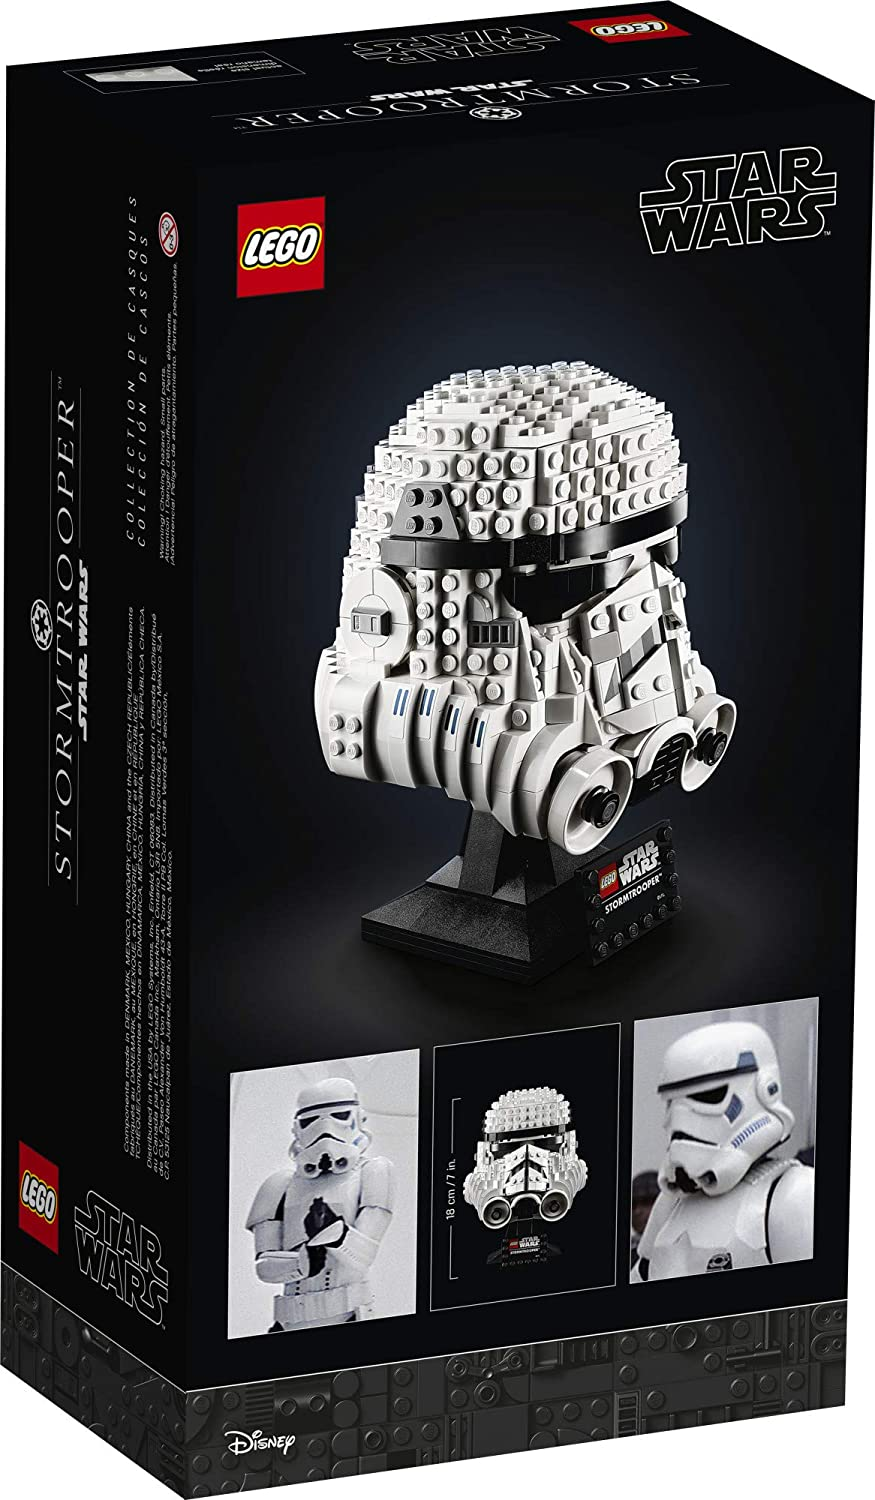 LEGO Star Wars Stormtrooper Helmet 75276 Building Kit, Cool Star Wars Collectible for Adults, New 2020 (647 Pieces)